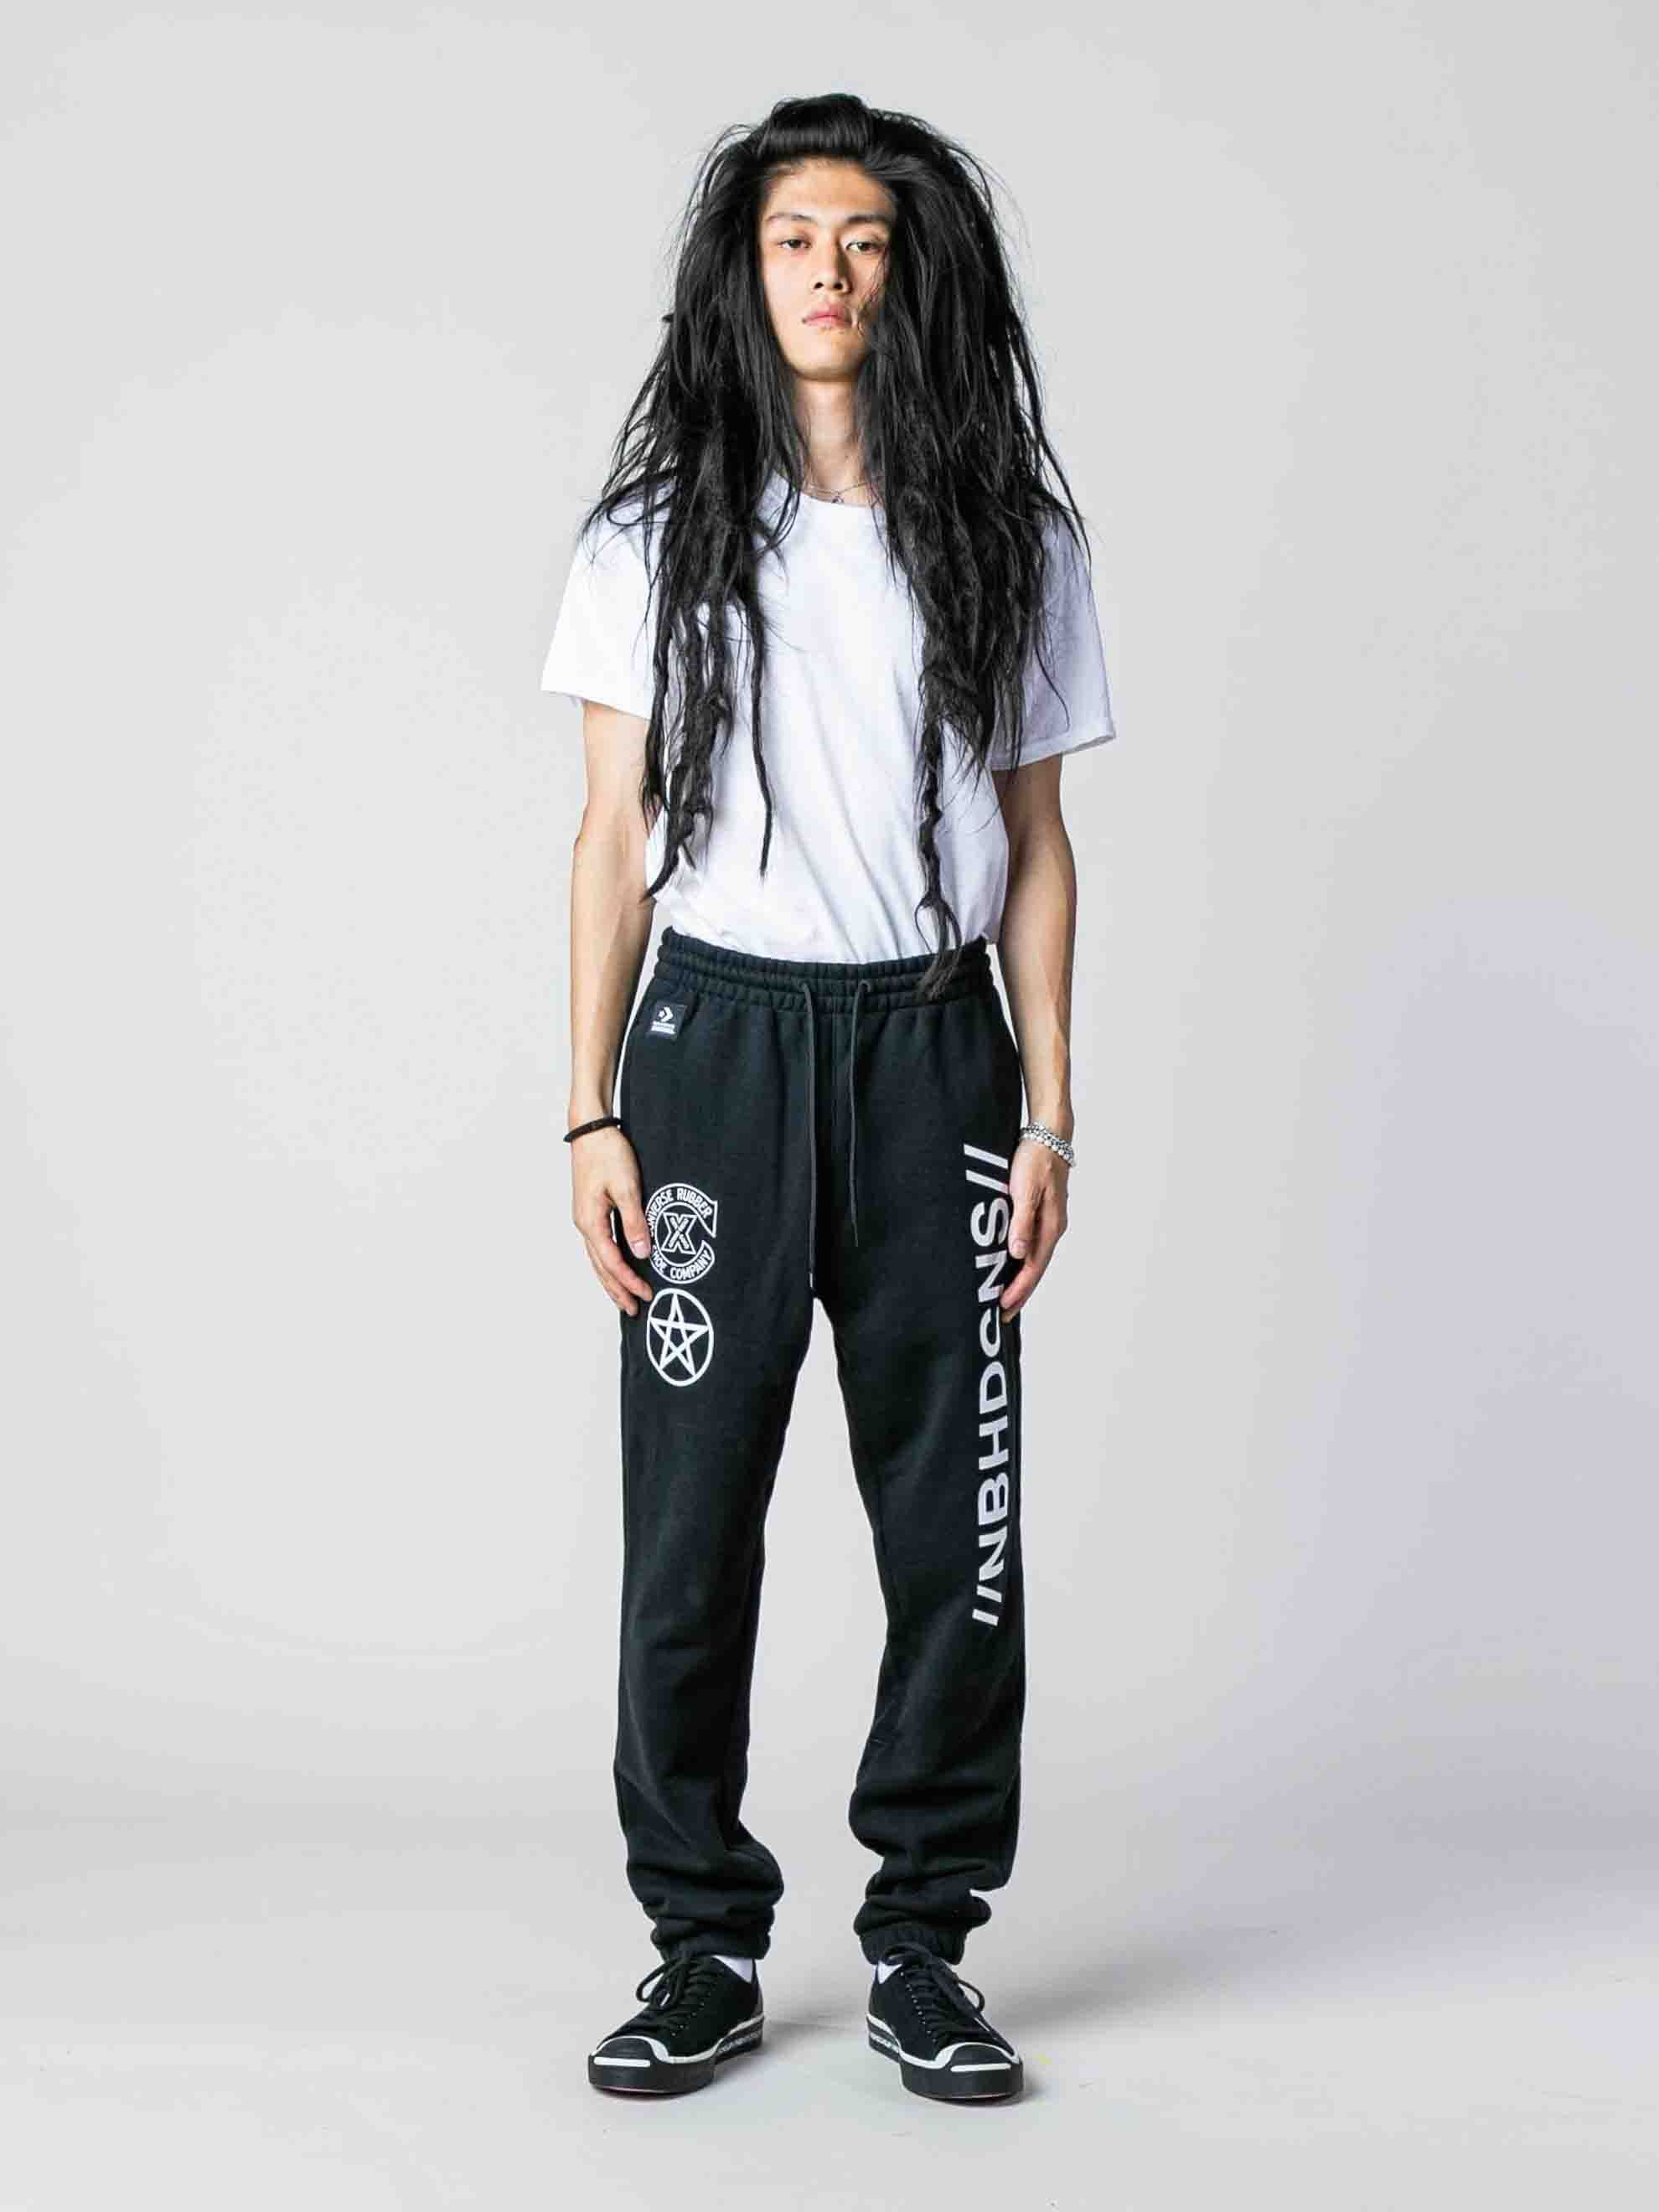 Black Converse x Neighborhood Sweatpant 4